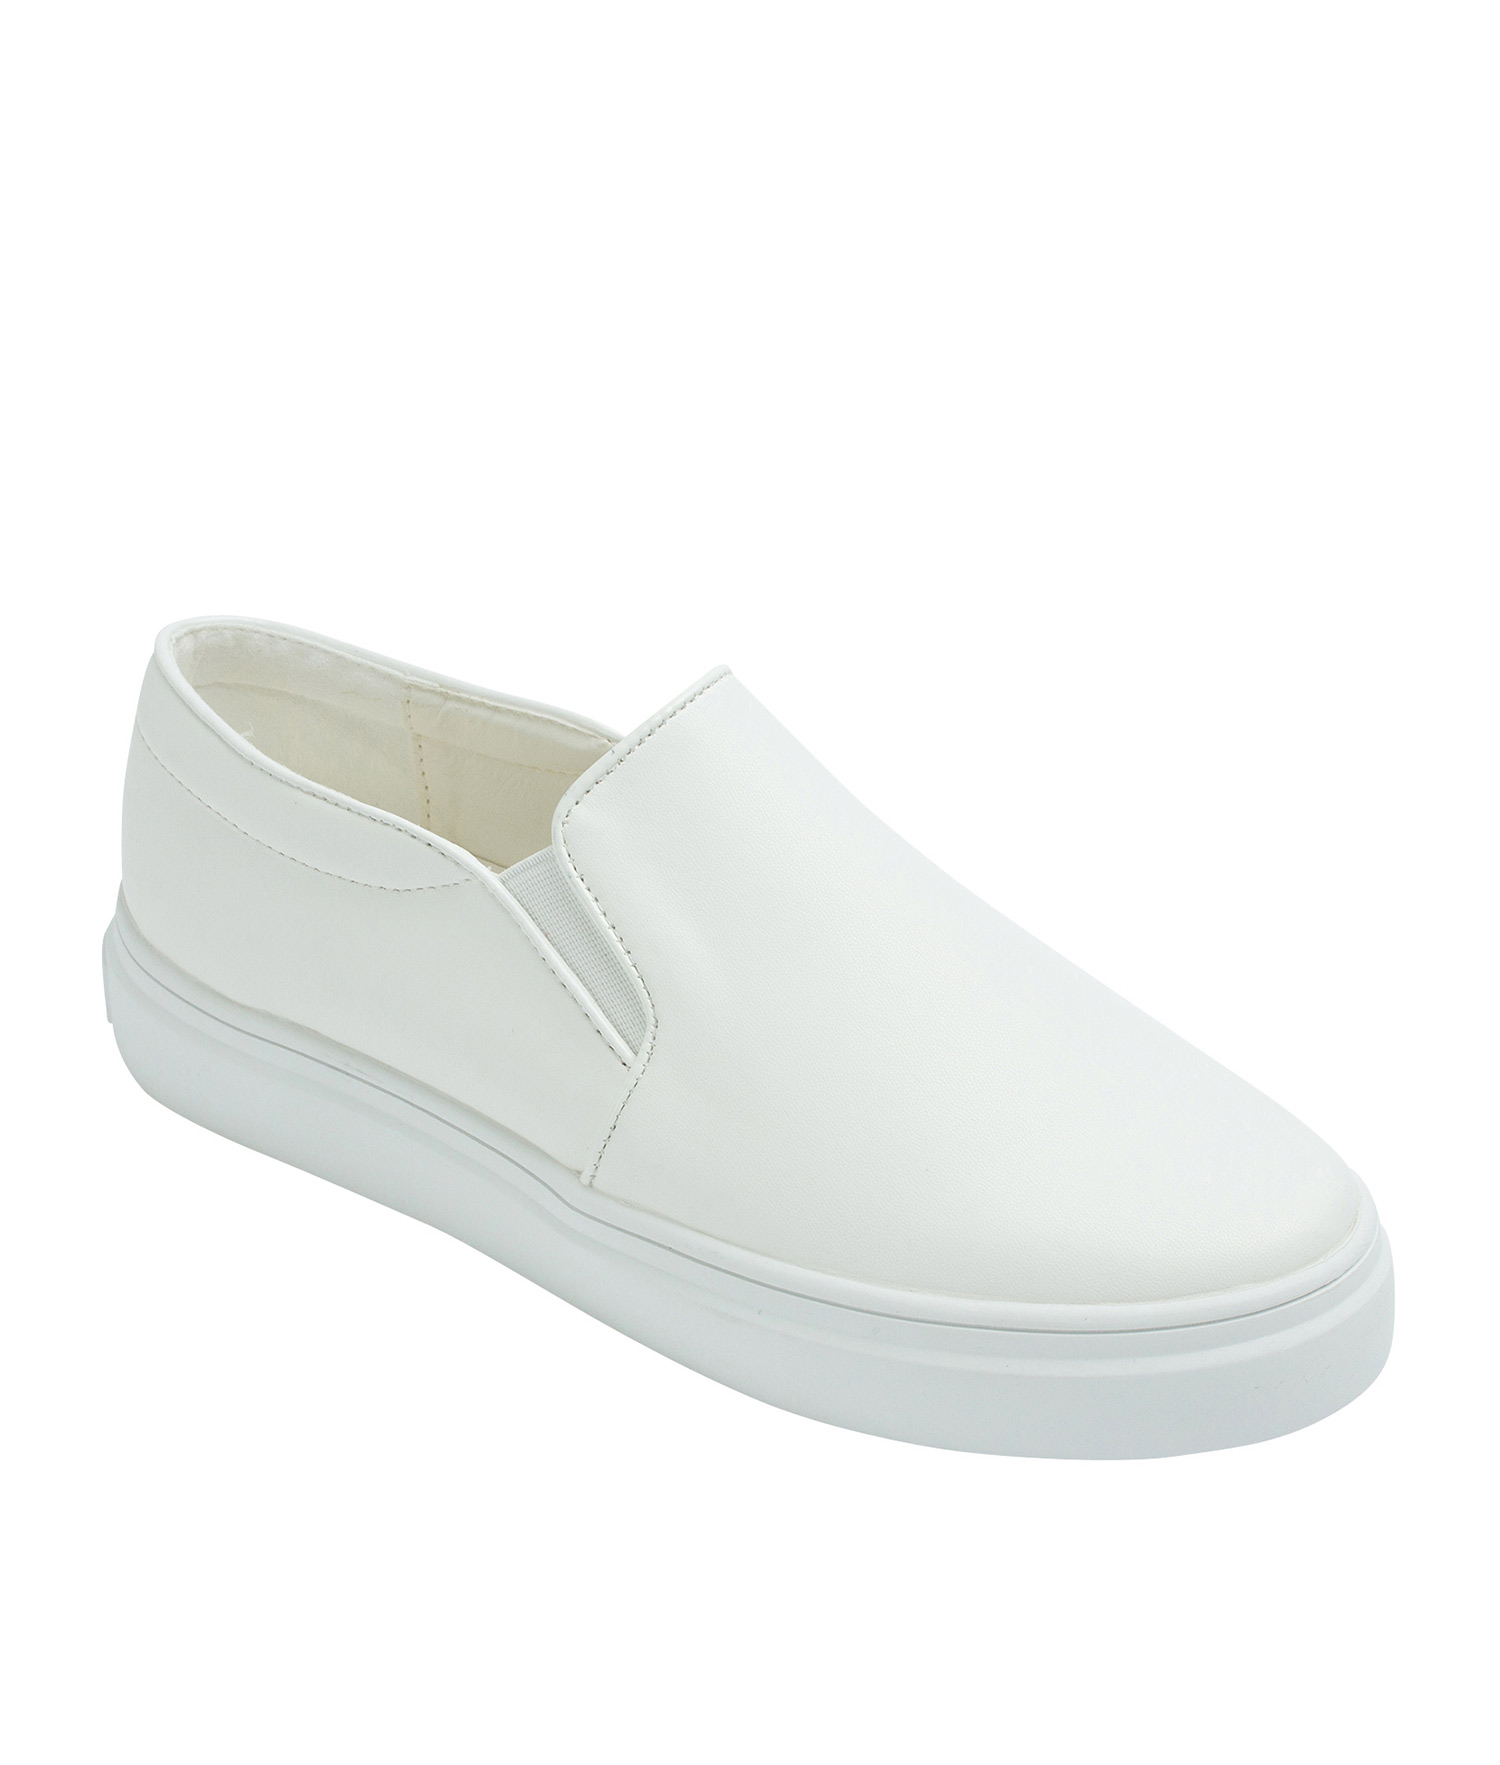 Classic Faux Leather Slip-On Sneakers